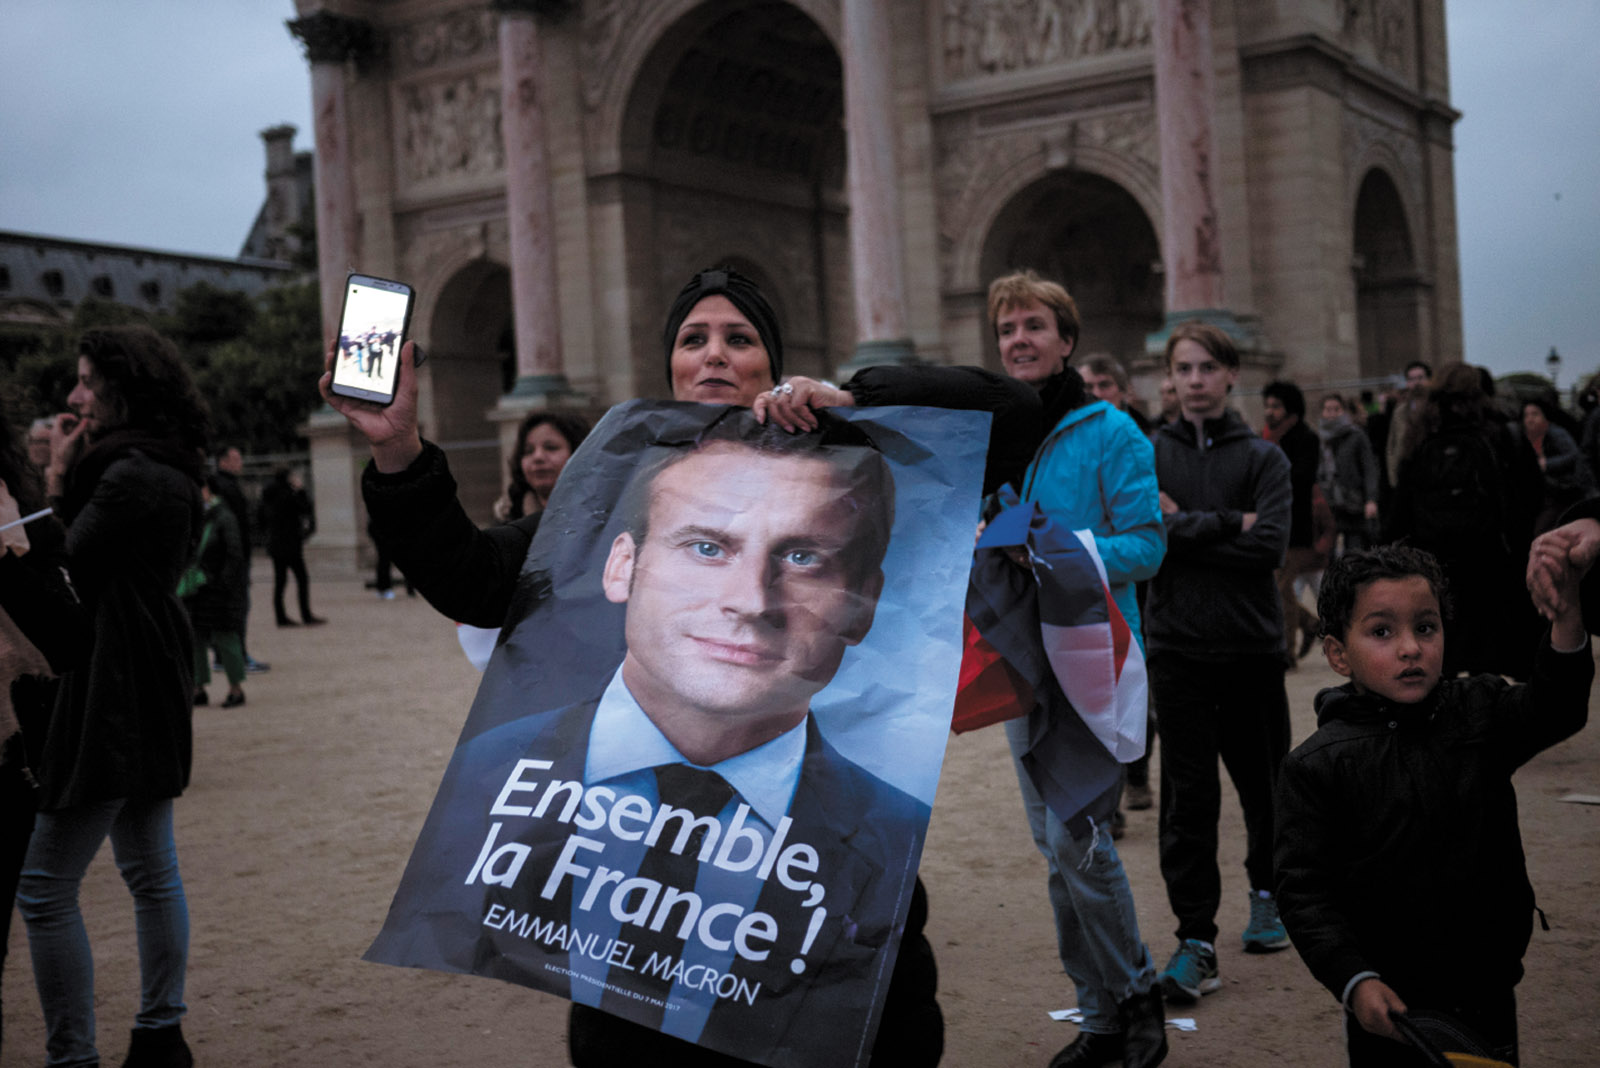 Supporters of Emmanuel Macron celebrating his victory in the French presidential election, Paris, May 2017